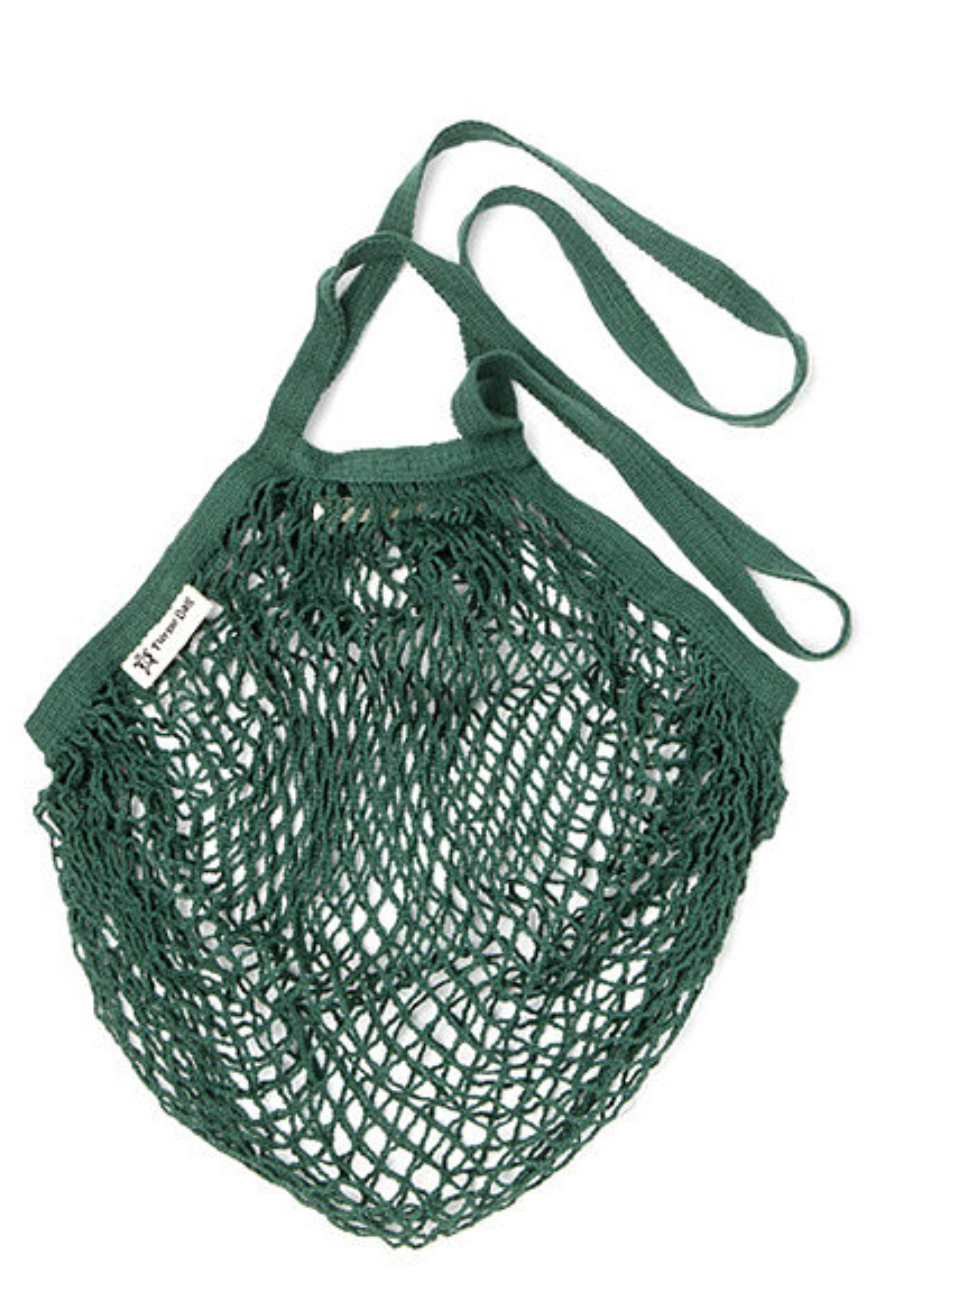 Turtle Bag Long Handled String Bag - Bottle Green